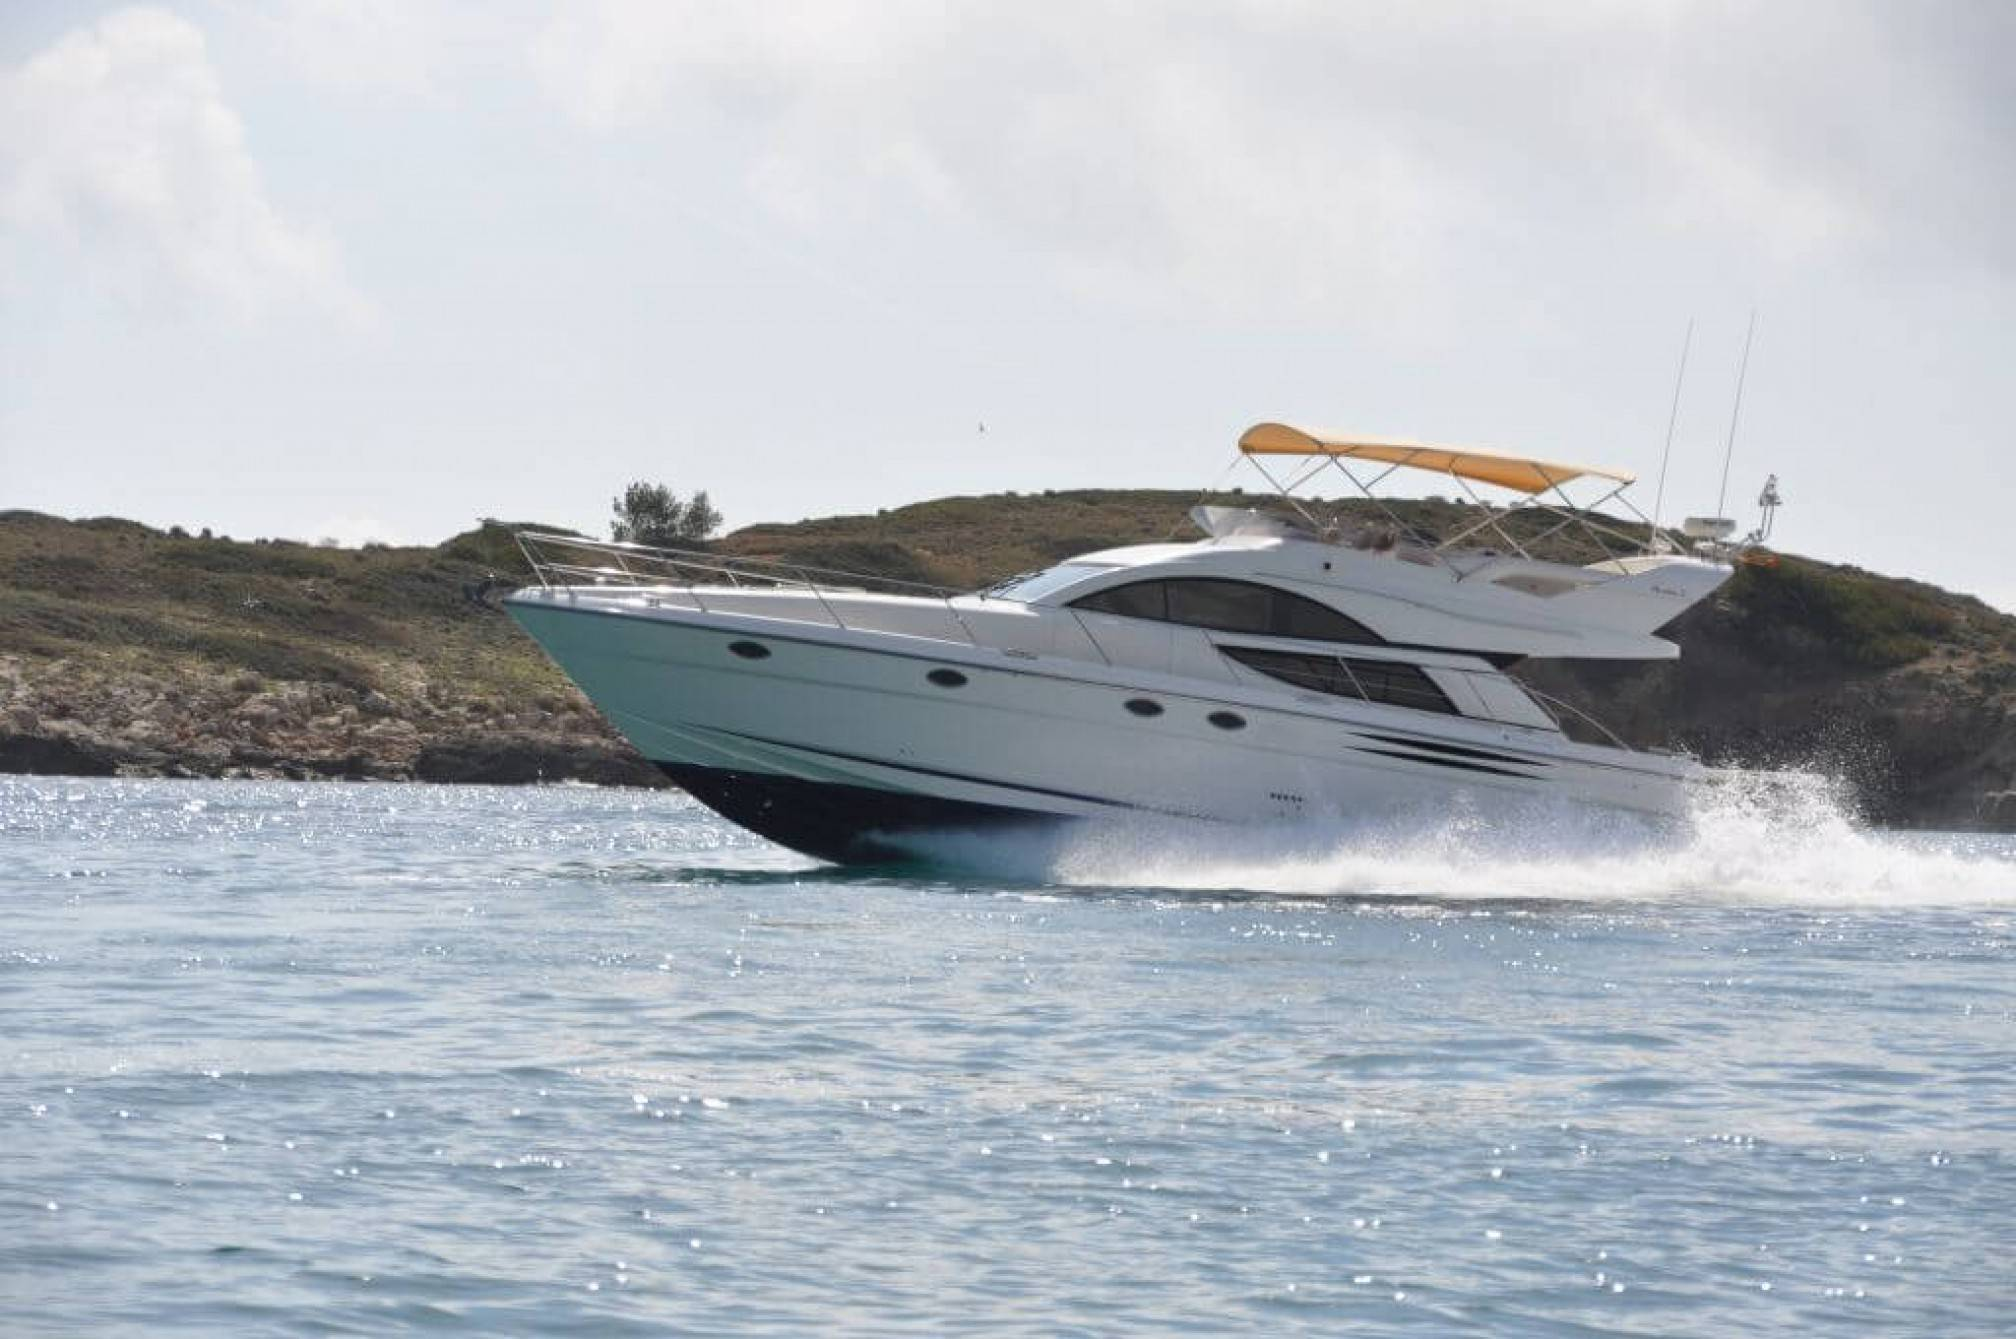 Fairline Phantom 50 yacht charter sailing